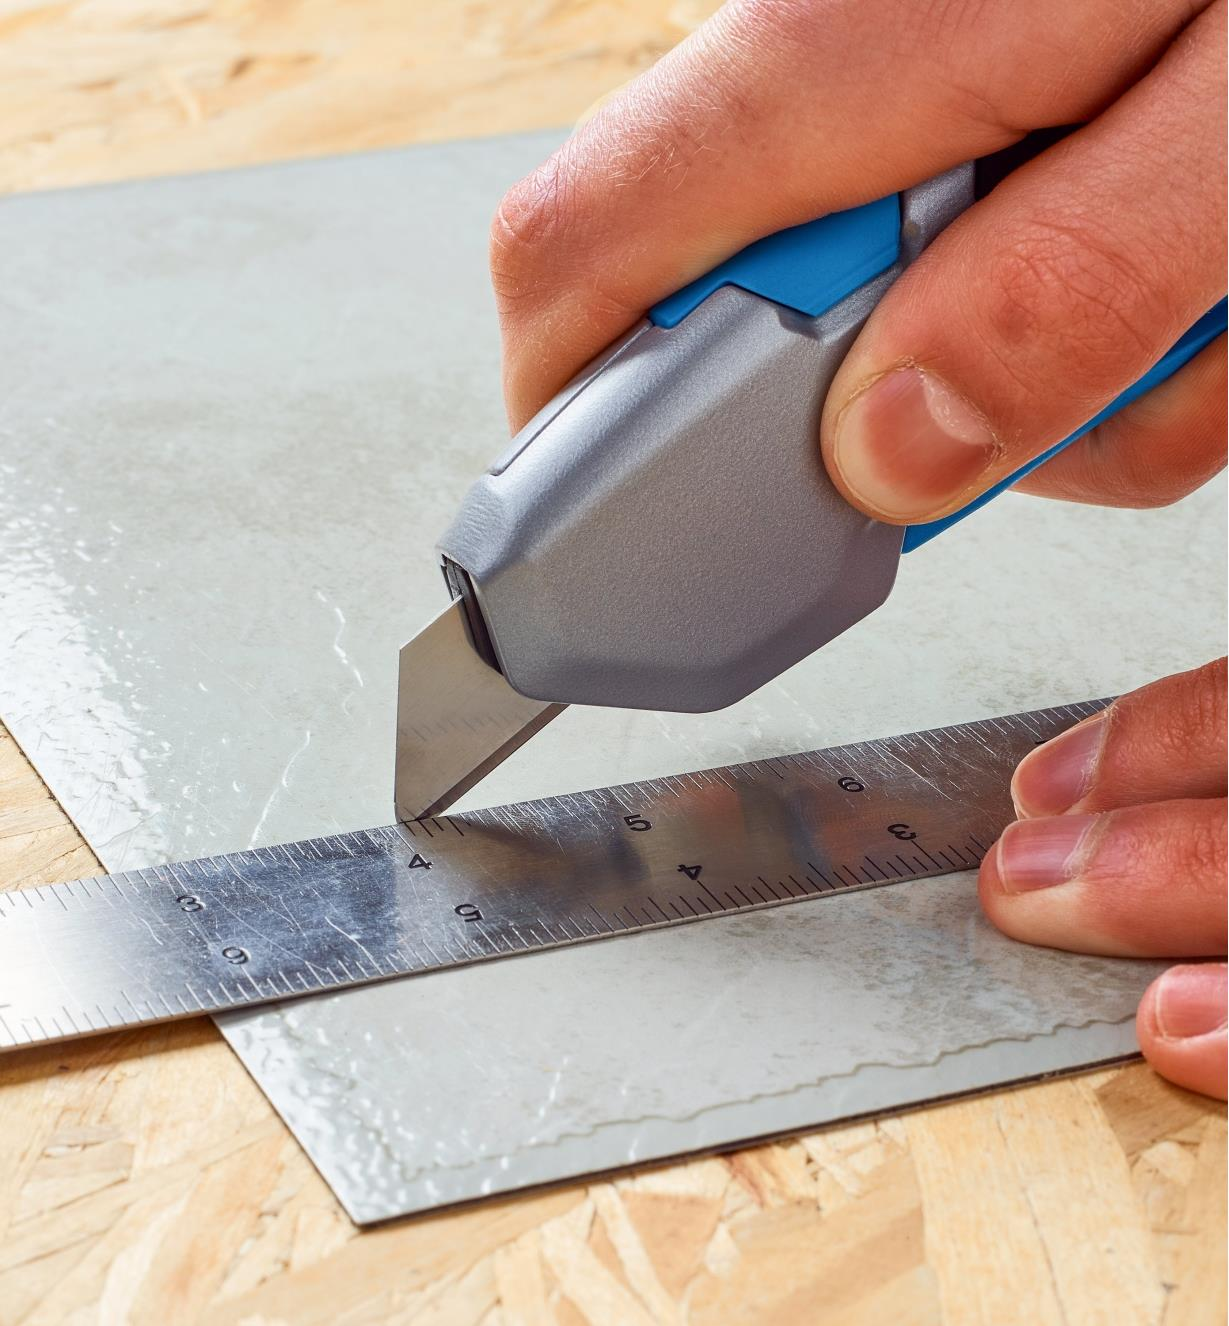 Safety utility knife cutting linoleum along the edge of a steel ruler